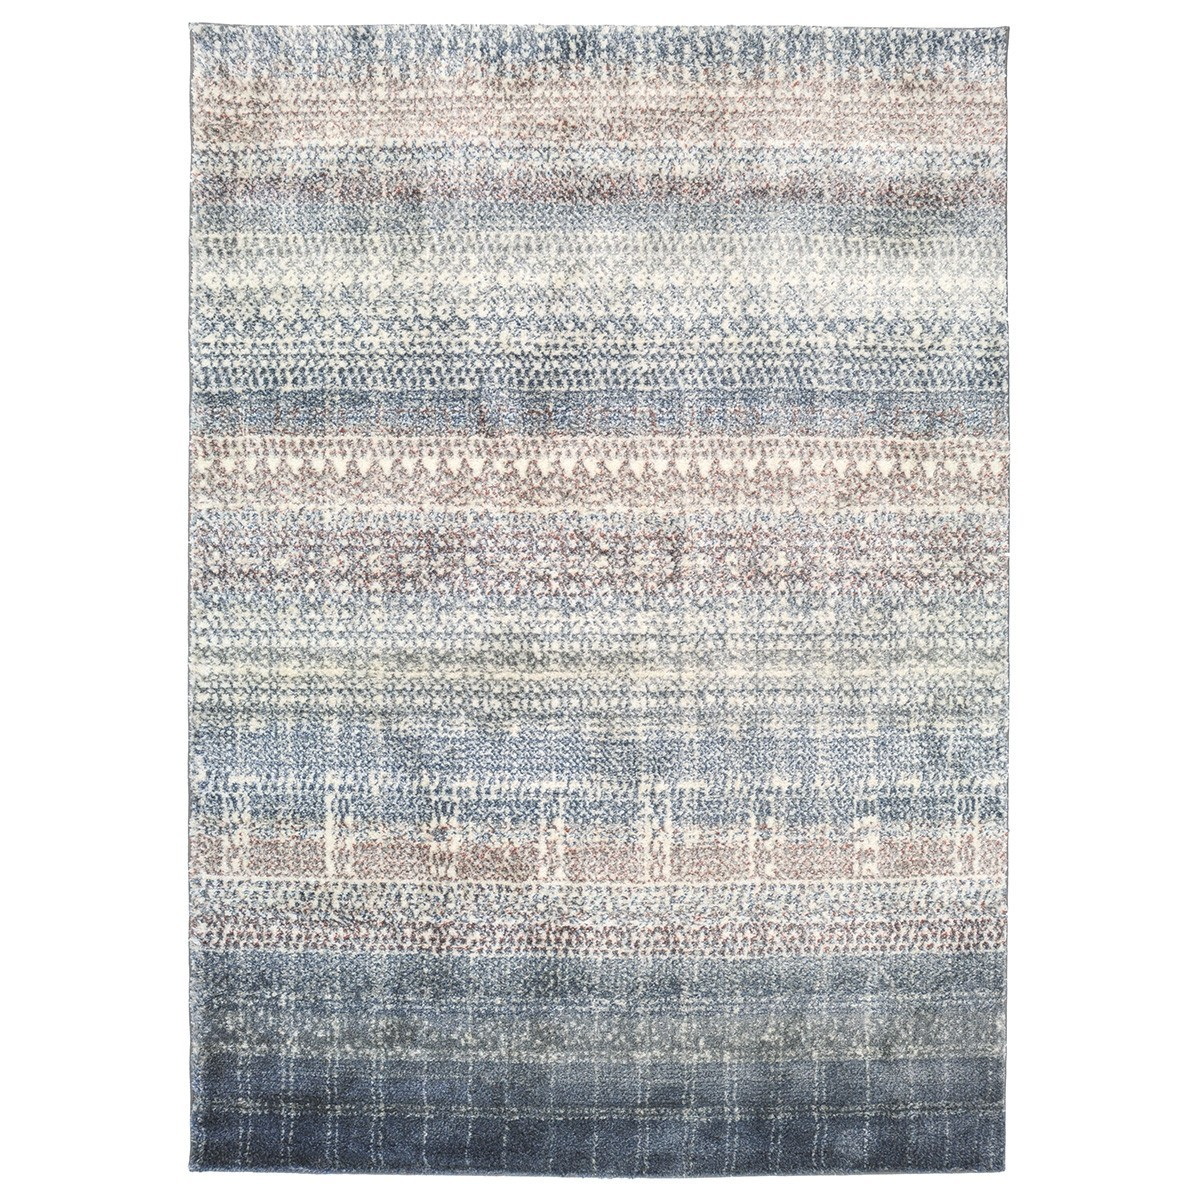 Soho Abastract Modern Rug, 335x235cm, Light